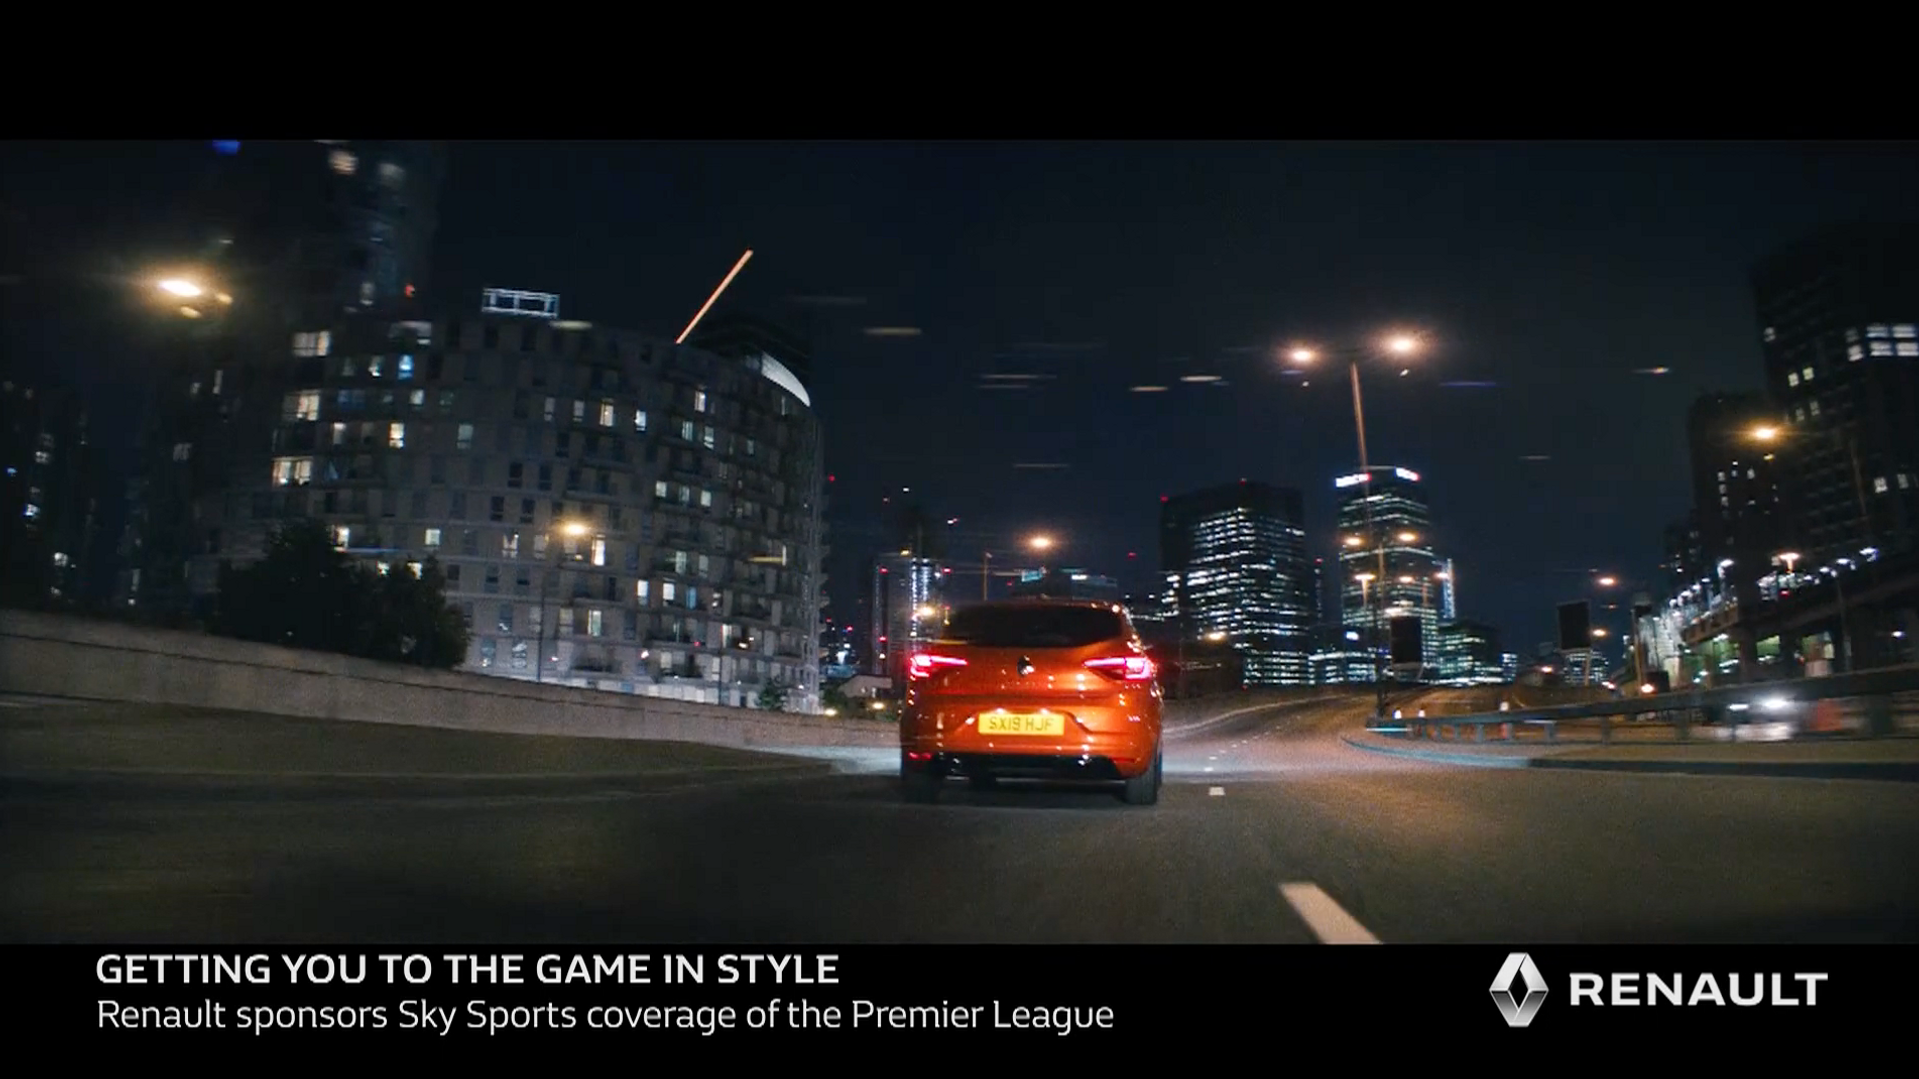 Renault - Getting you to the game in style